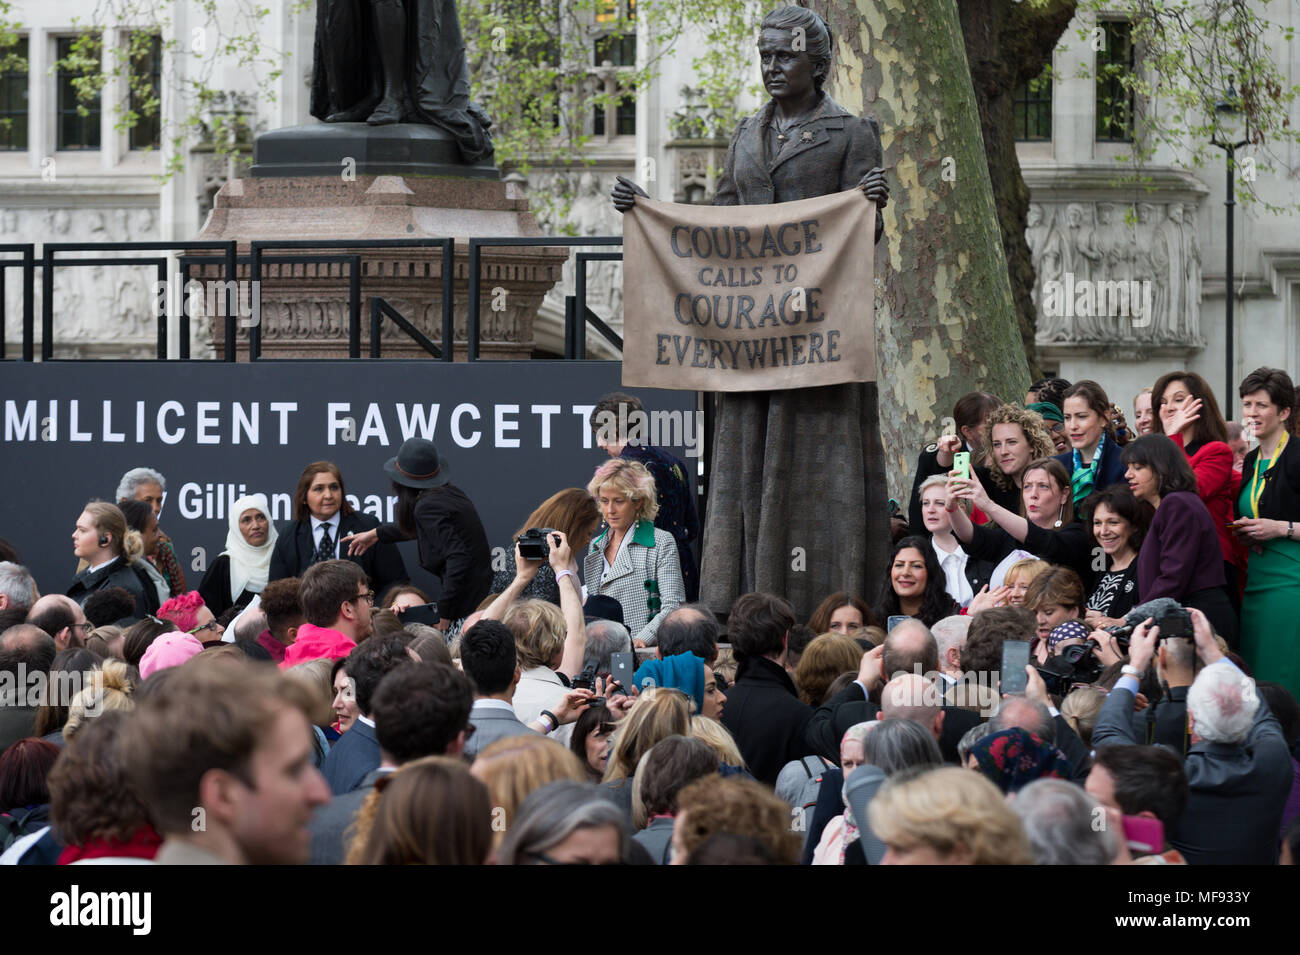 London, UK. 24th April, 2018. Unveiling ceremony of Millicent Fawcett statue in Parliament Square. The first statue of a woman in Parliament Square joins the line-up of male figures to mark the centenary of women's suffrage in Britain - two years after the campaign to get female representation outside the Palace of Westminster began. Credit: Guy Corbishley/Alamy Live News - Stock Image